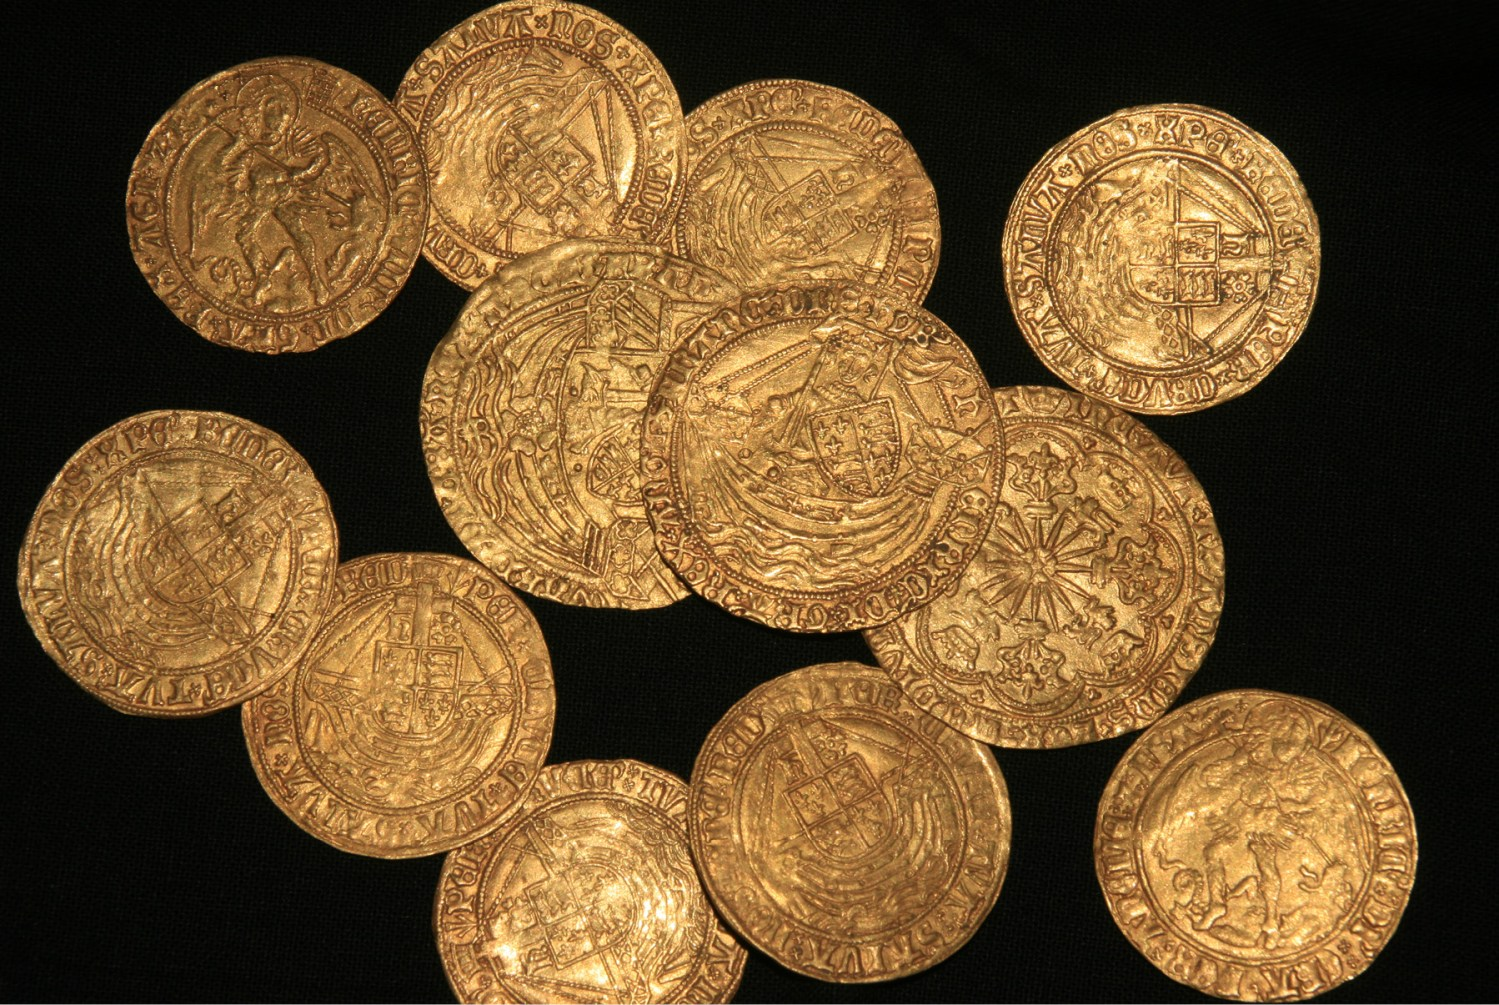 right The New Forest hoard includes various denominations, including a gold noble of Henry VI (shown in the centre); ryals of Edward IV (the large coins behind the noble); gold angels of Edward IV, Henry VII, and Henry VIII (the smaller coins); and four crowns of Henry VIII (see p.50).